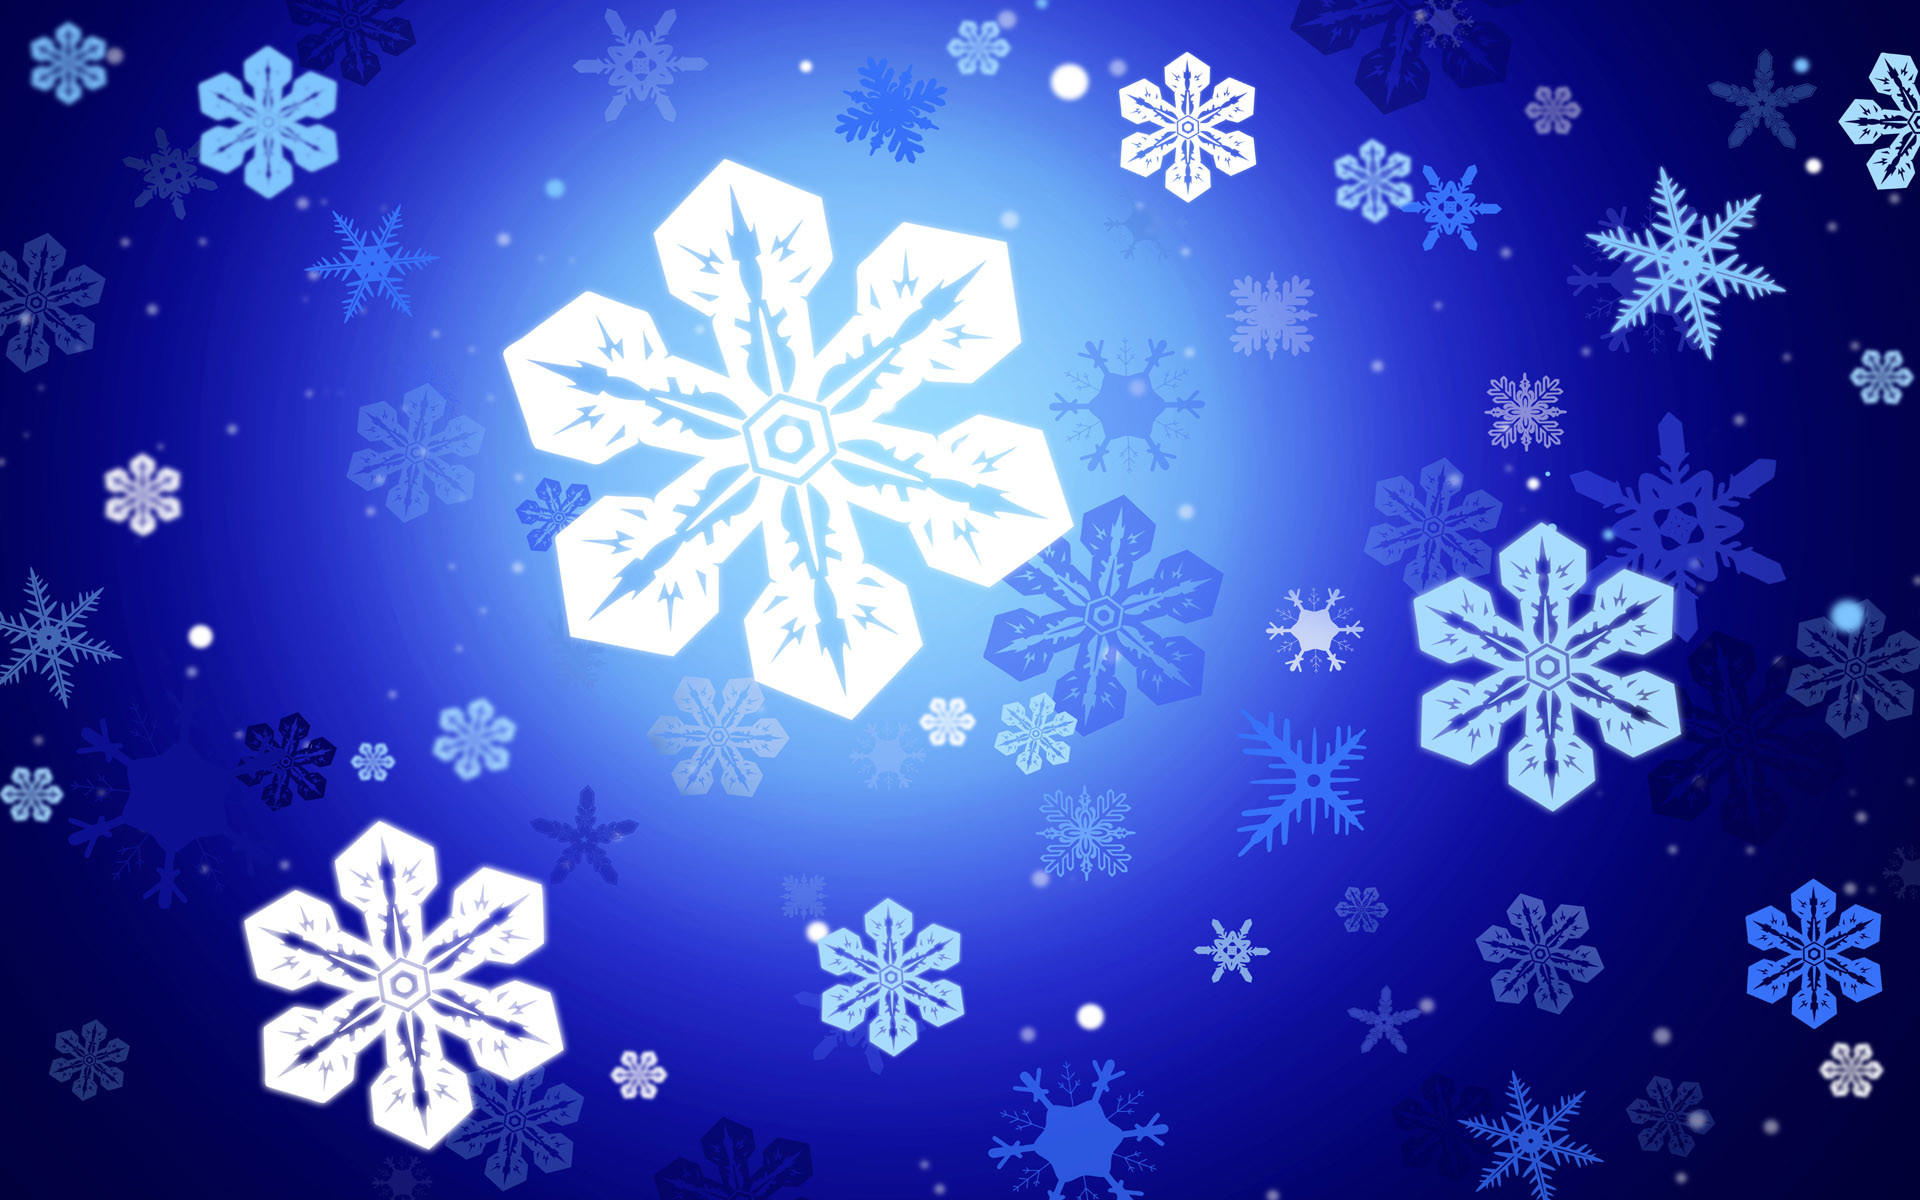 Falling Snow Wallpaper Animated Snow falling a…